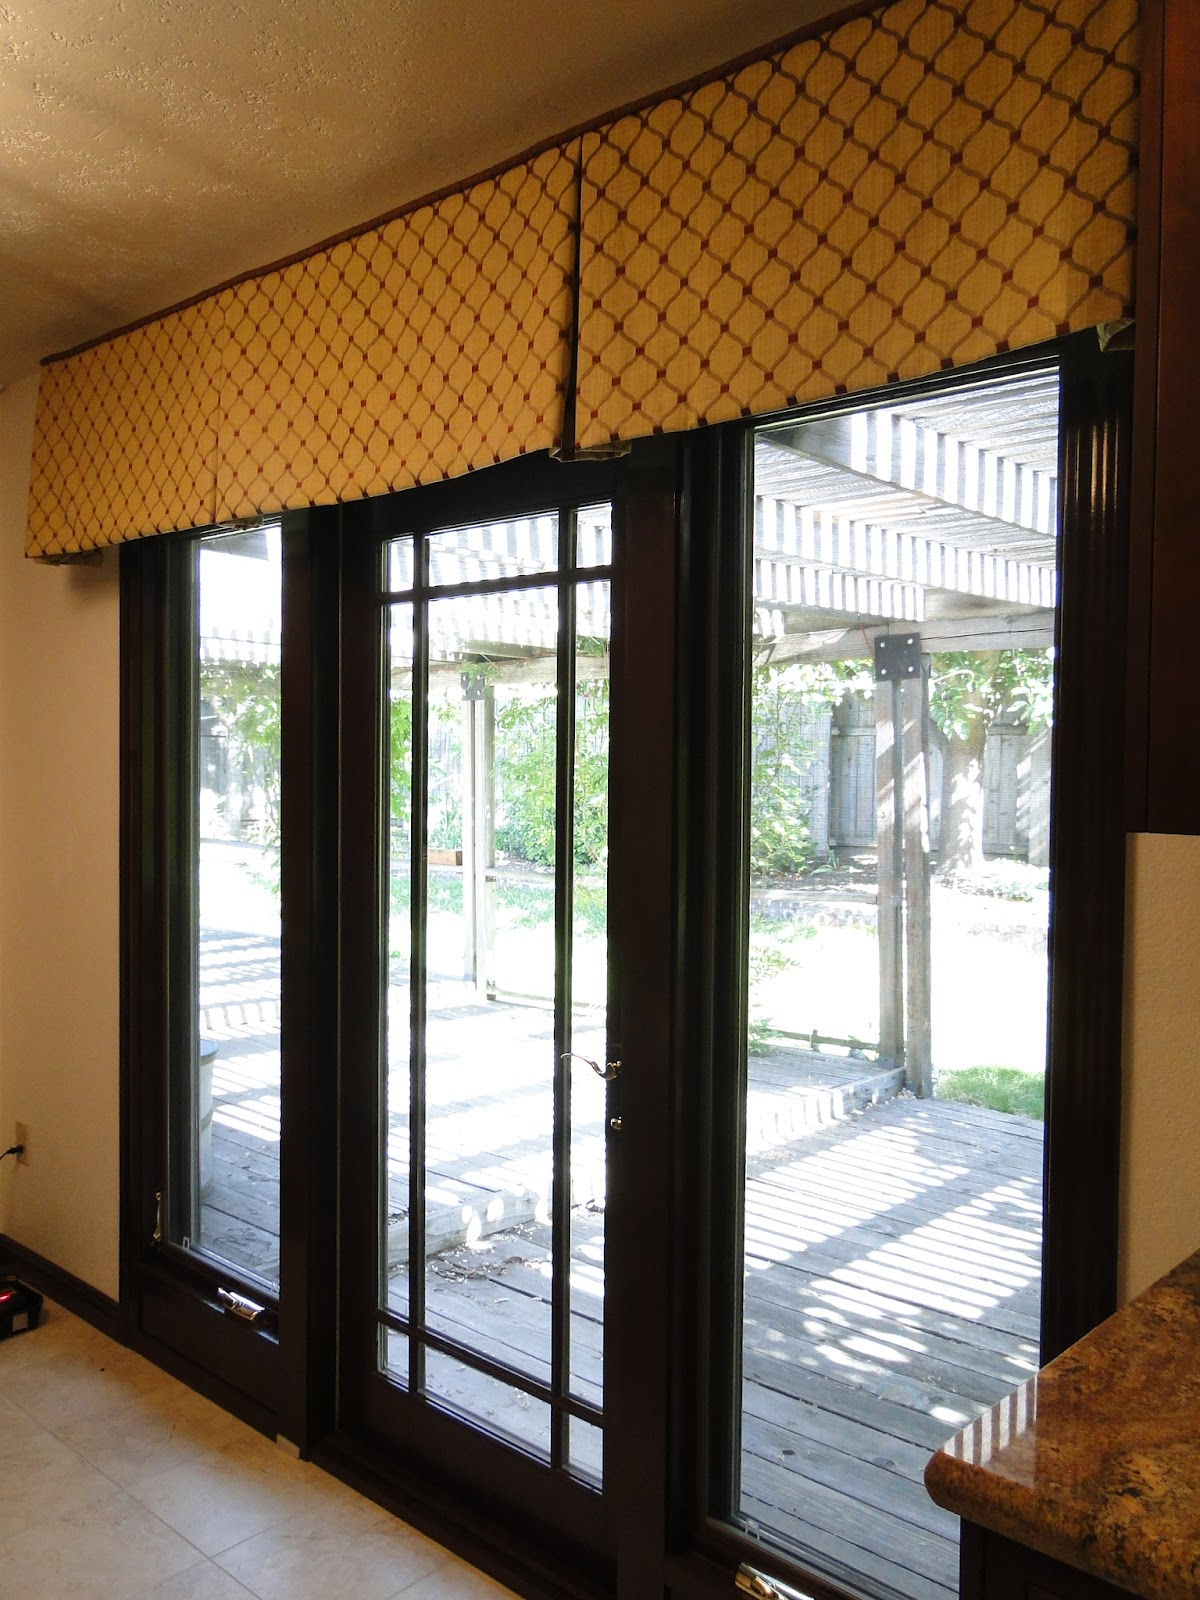 Marie antoinette interiors the french door dilemma for Roller screens for french doors